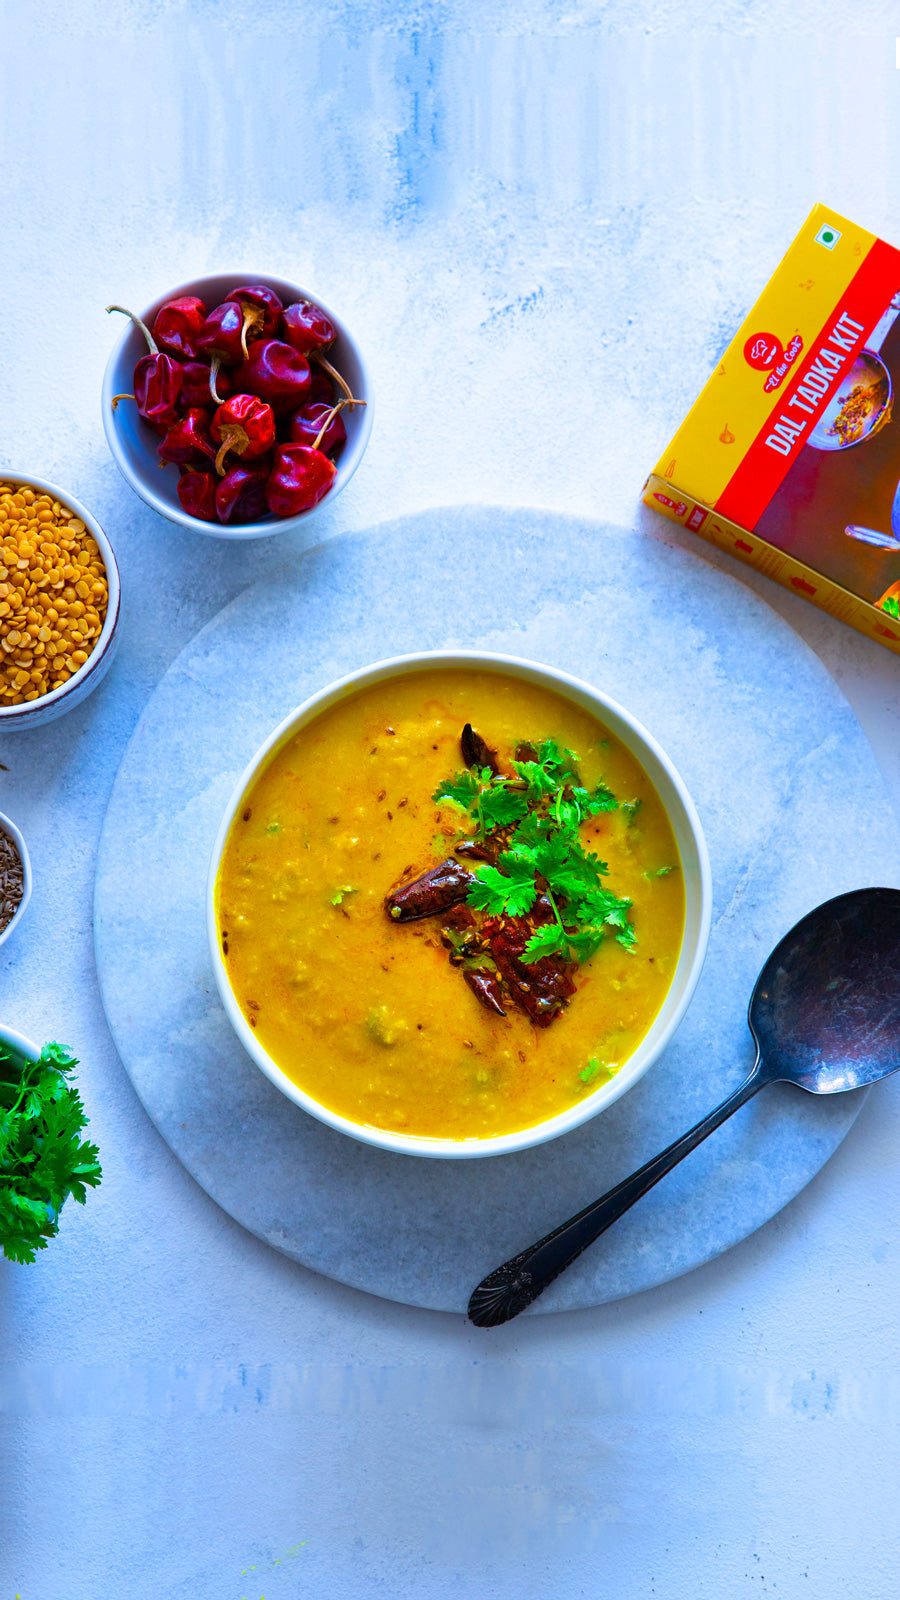 elthecook lentils, lentil soup, dal tadka, dhal, daal, dahl recipe meal kit, Vegetarian Indian Cooking, Healthy, Natural, Buy Online, Shipped worldwide el the cook